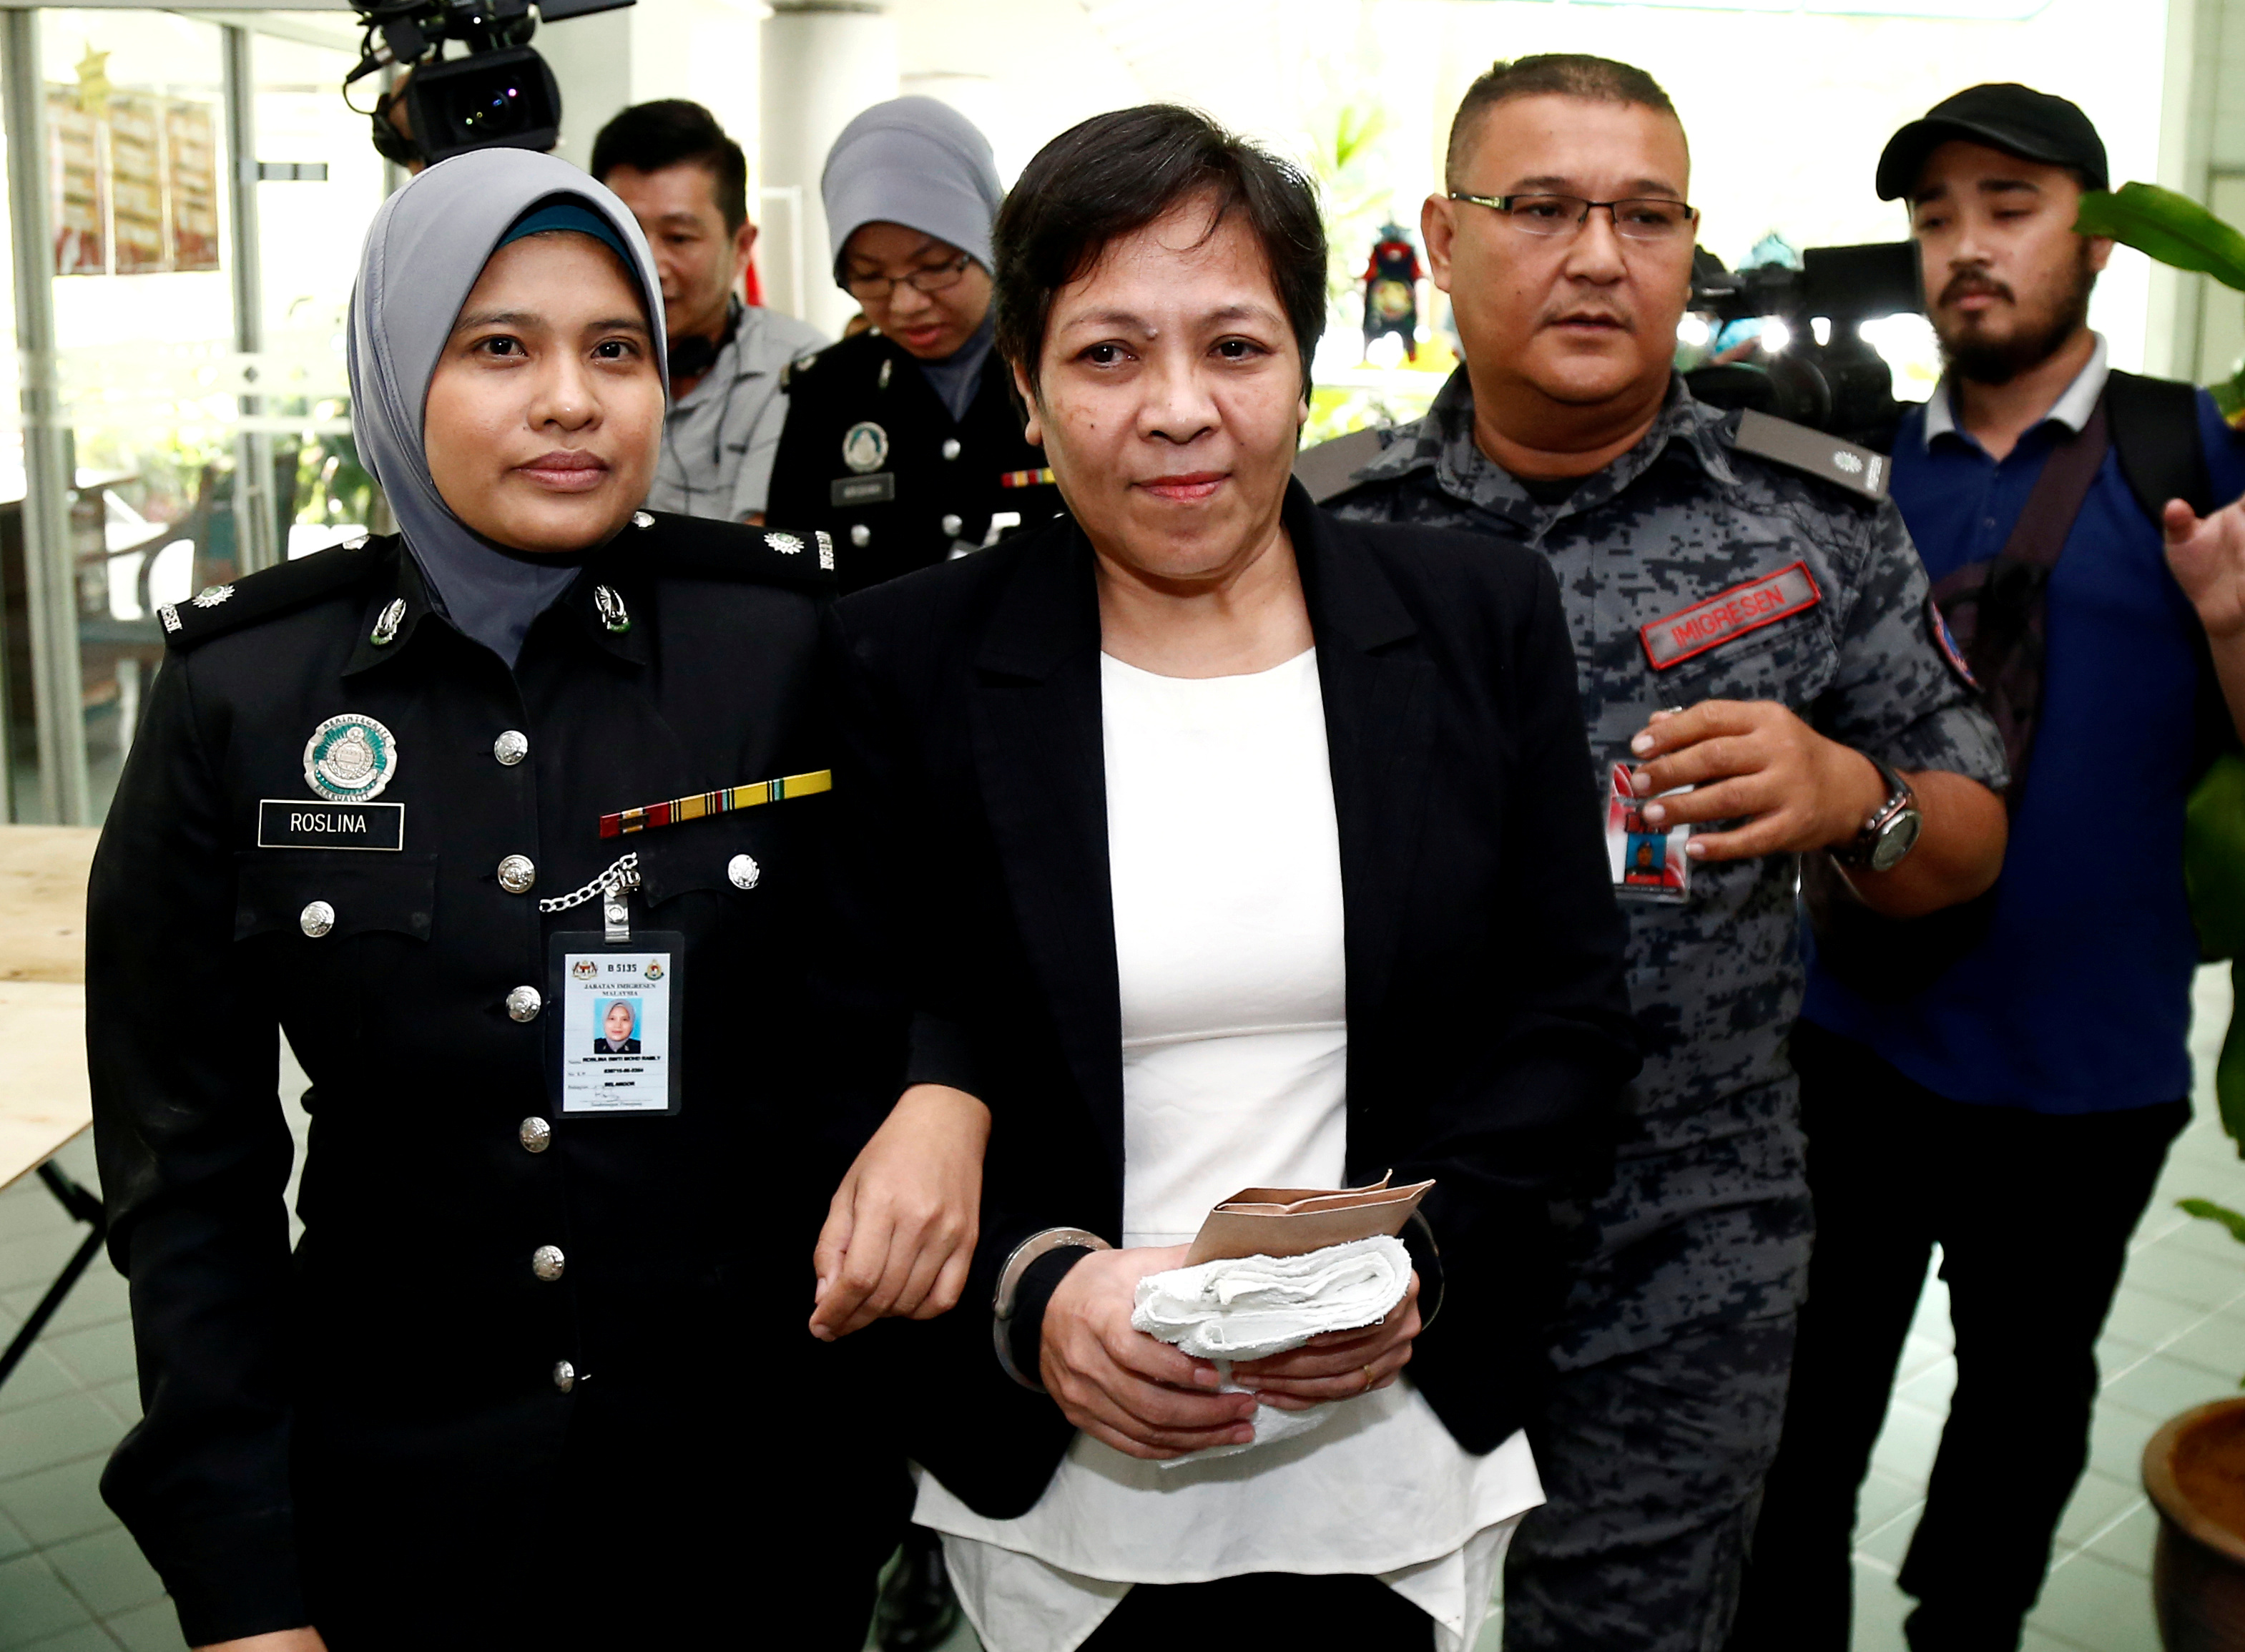 Australian Maria Elvira Pinto Exposto is released from the High Court in Shah Alam, outside Kuala Lumpur, Malaysia on Dec. 27, 2017.